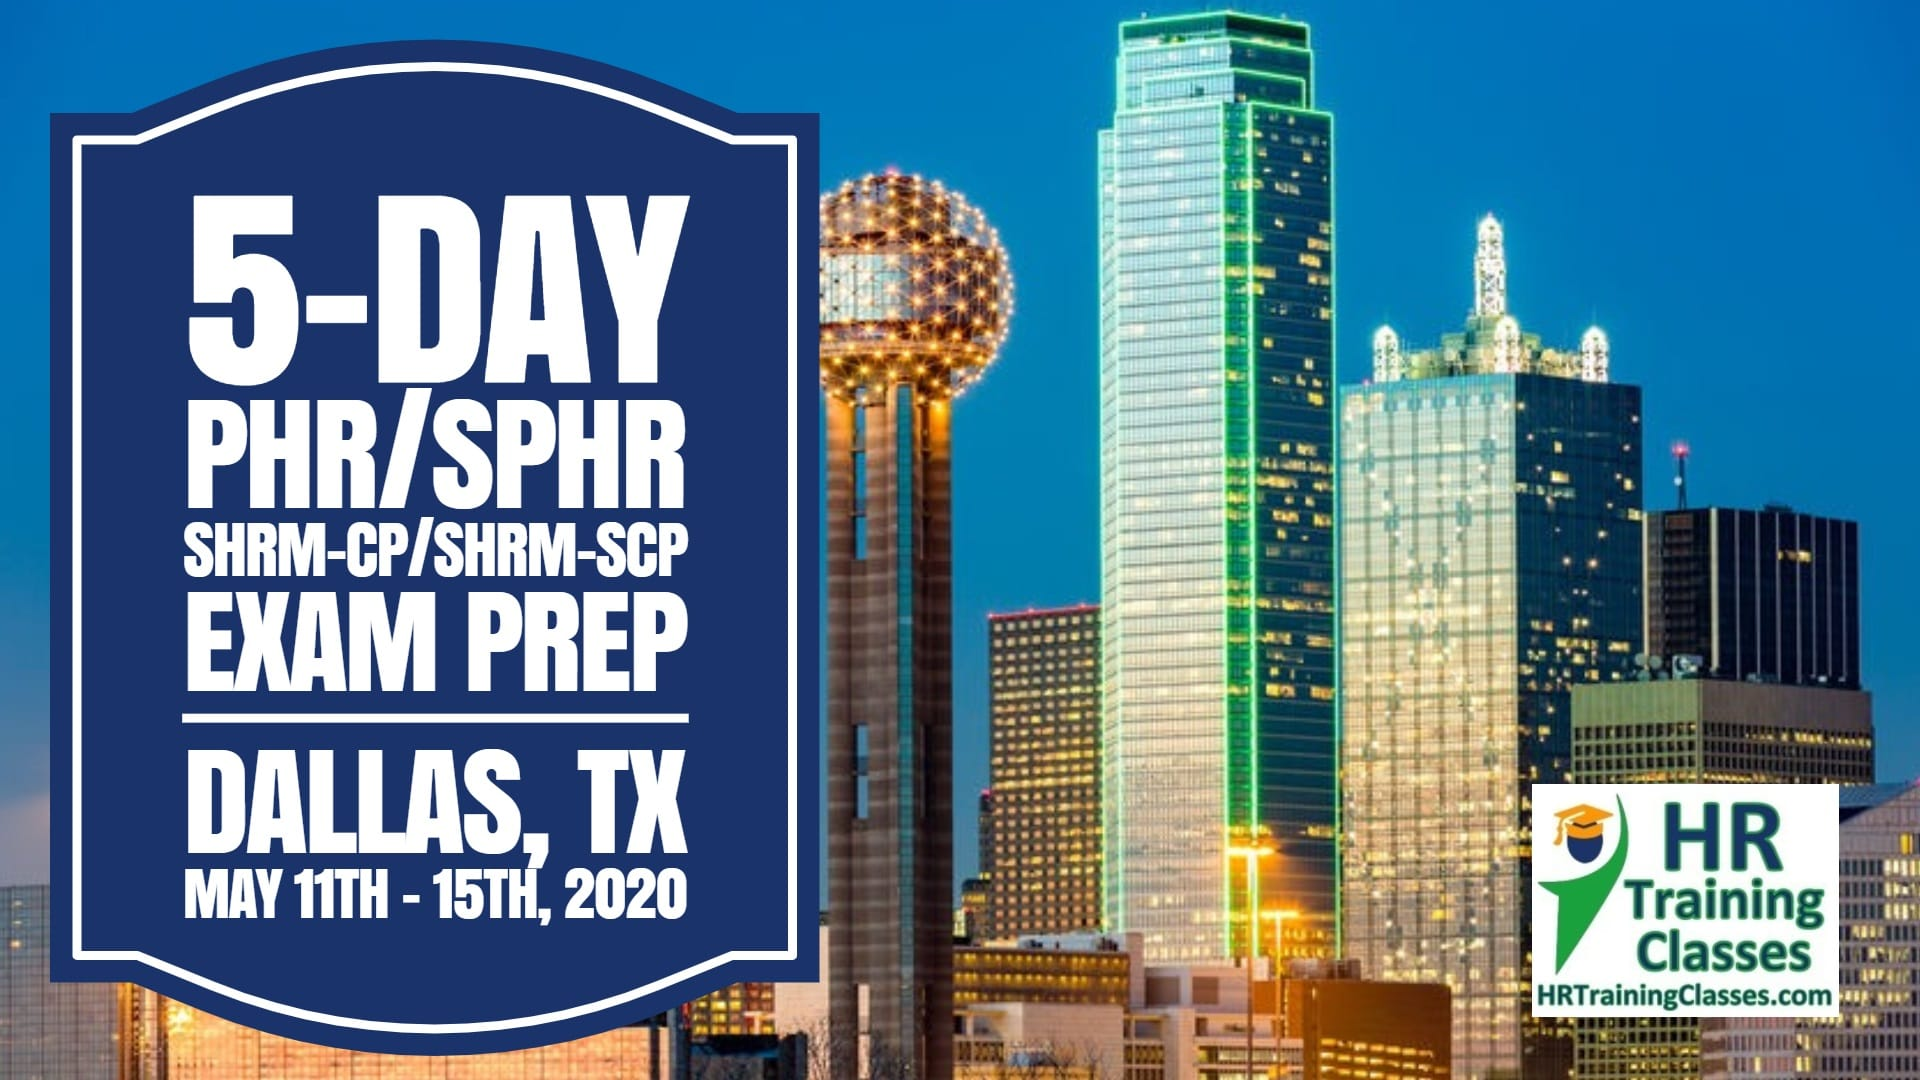 5-Day PHR, SPHR, SHRM-CP and SHRM-SCP Exam Prep Boot Camp in Dallas, TX starting 5-11-2020 and led by Elga lejarza-Penn